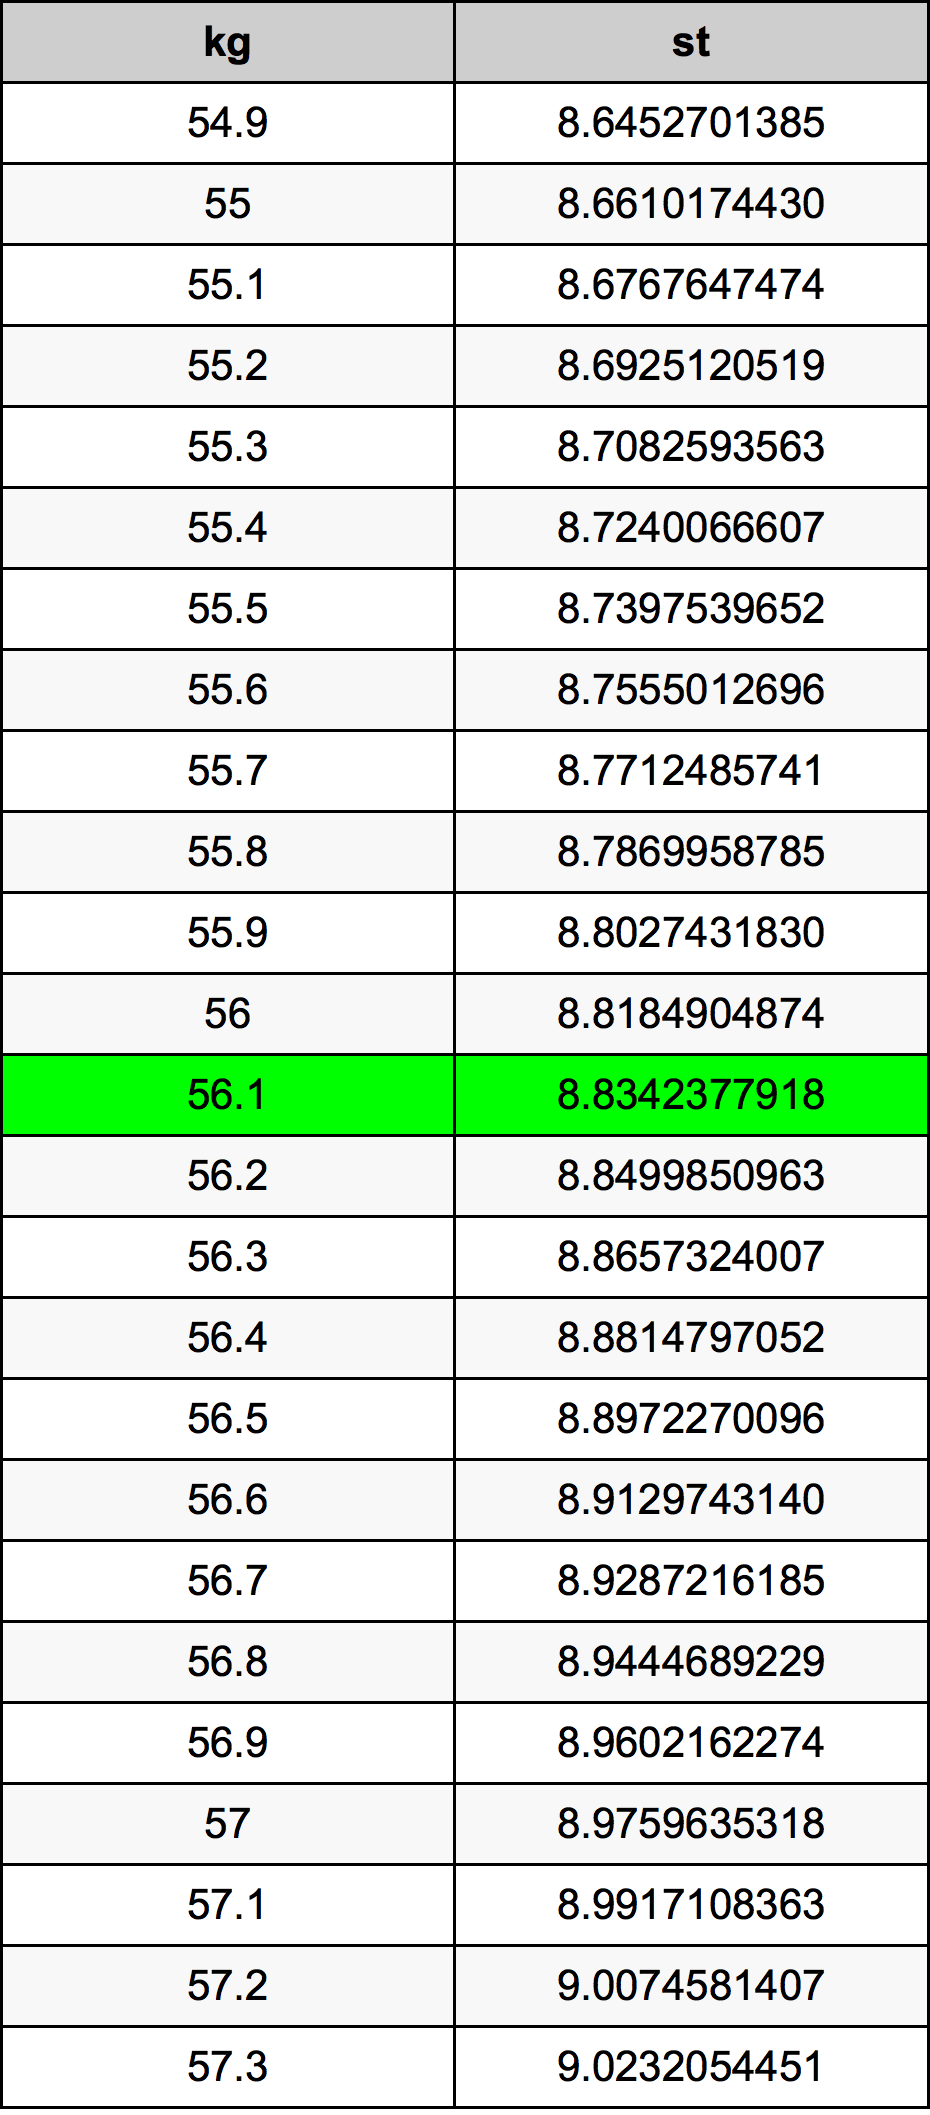 561 kilogrammes to stones converter 561 kg to st converter 561 kilogramme conversion table geenschuldenfo Choice Image